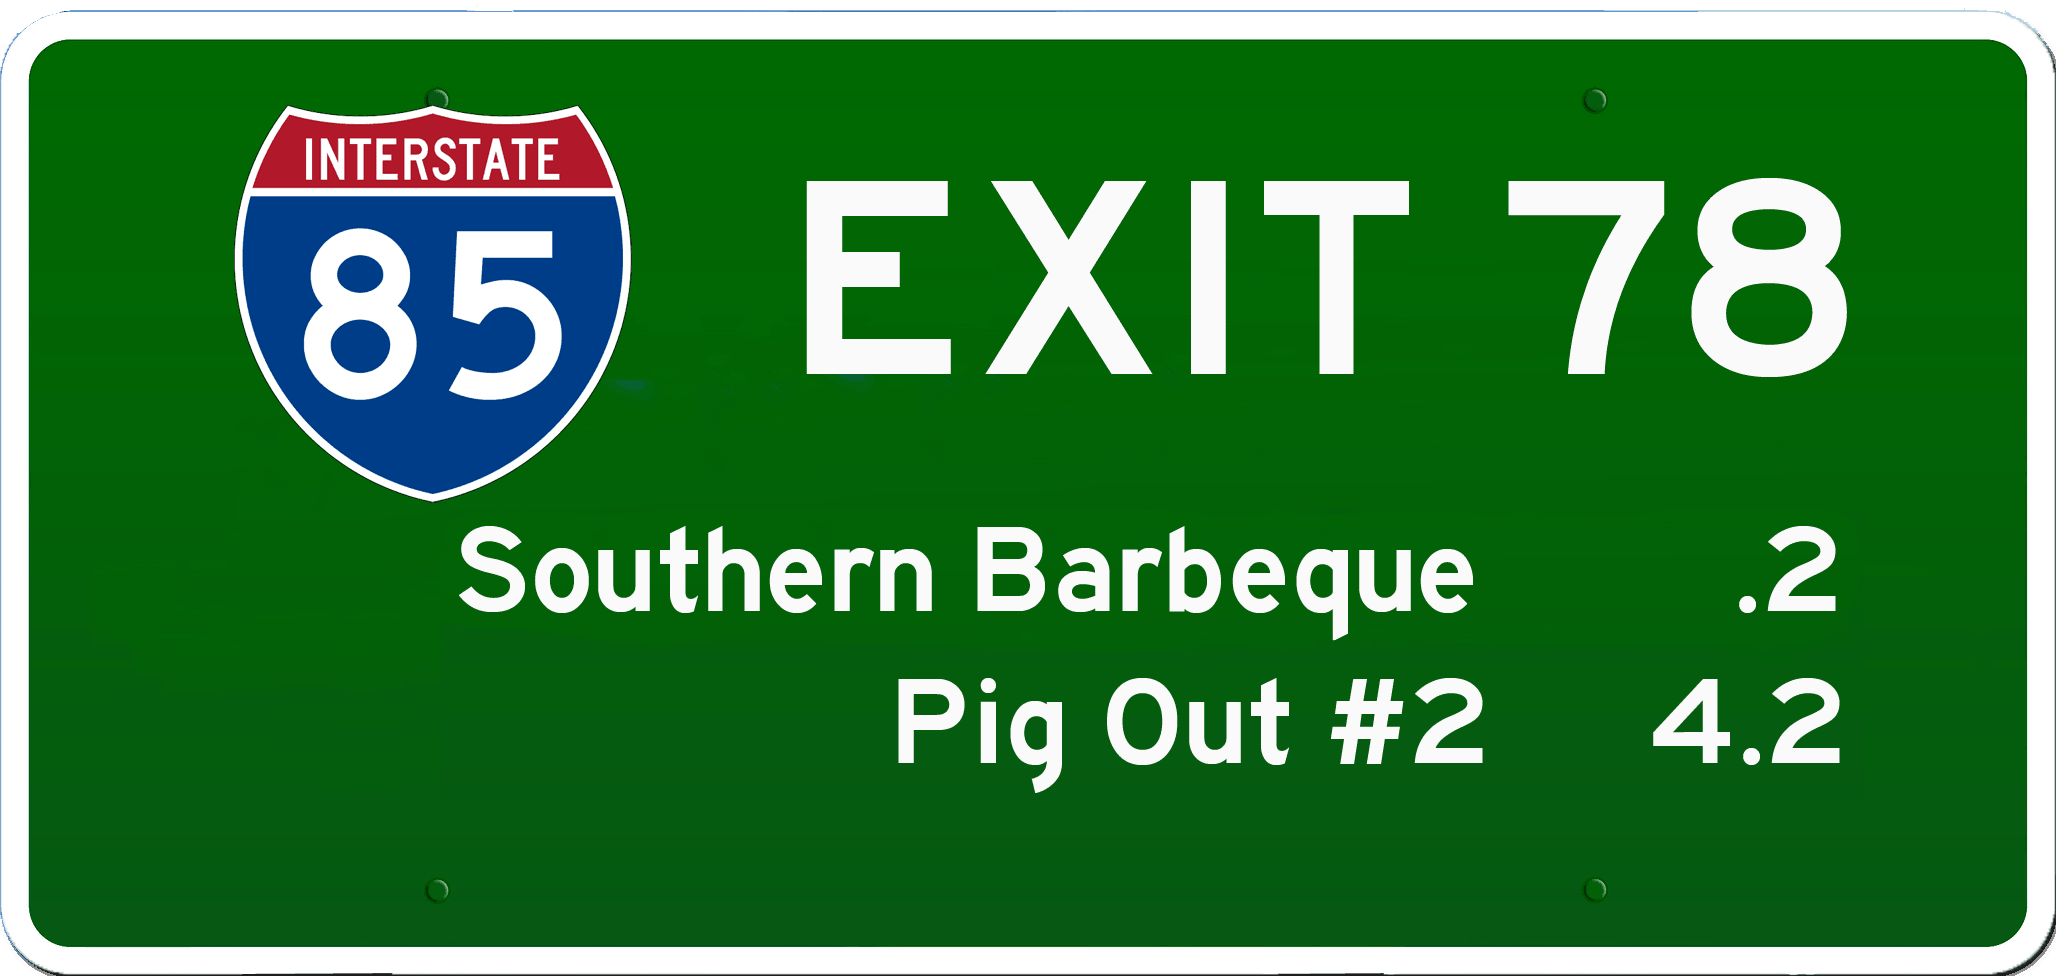 SC BBQ on I-85 at Exit 78